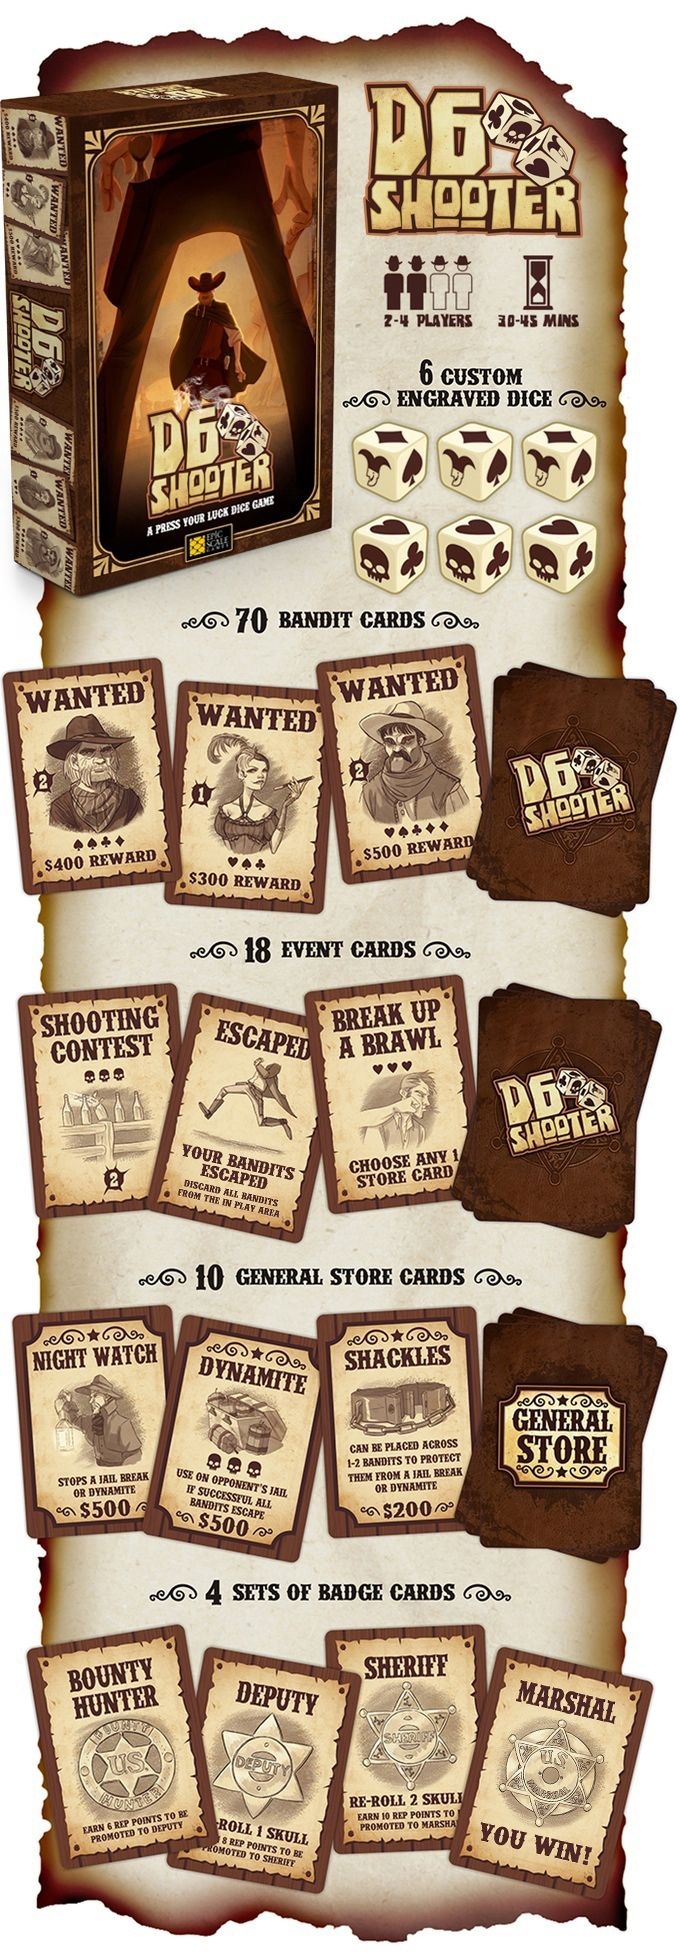 D6 Shooter: A Fast Paced, Press Your Luck Western Dice Game: Kickstarter